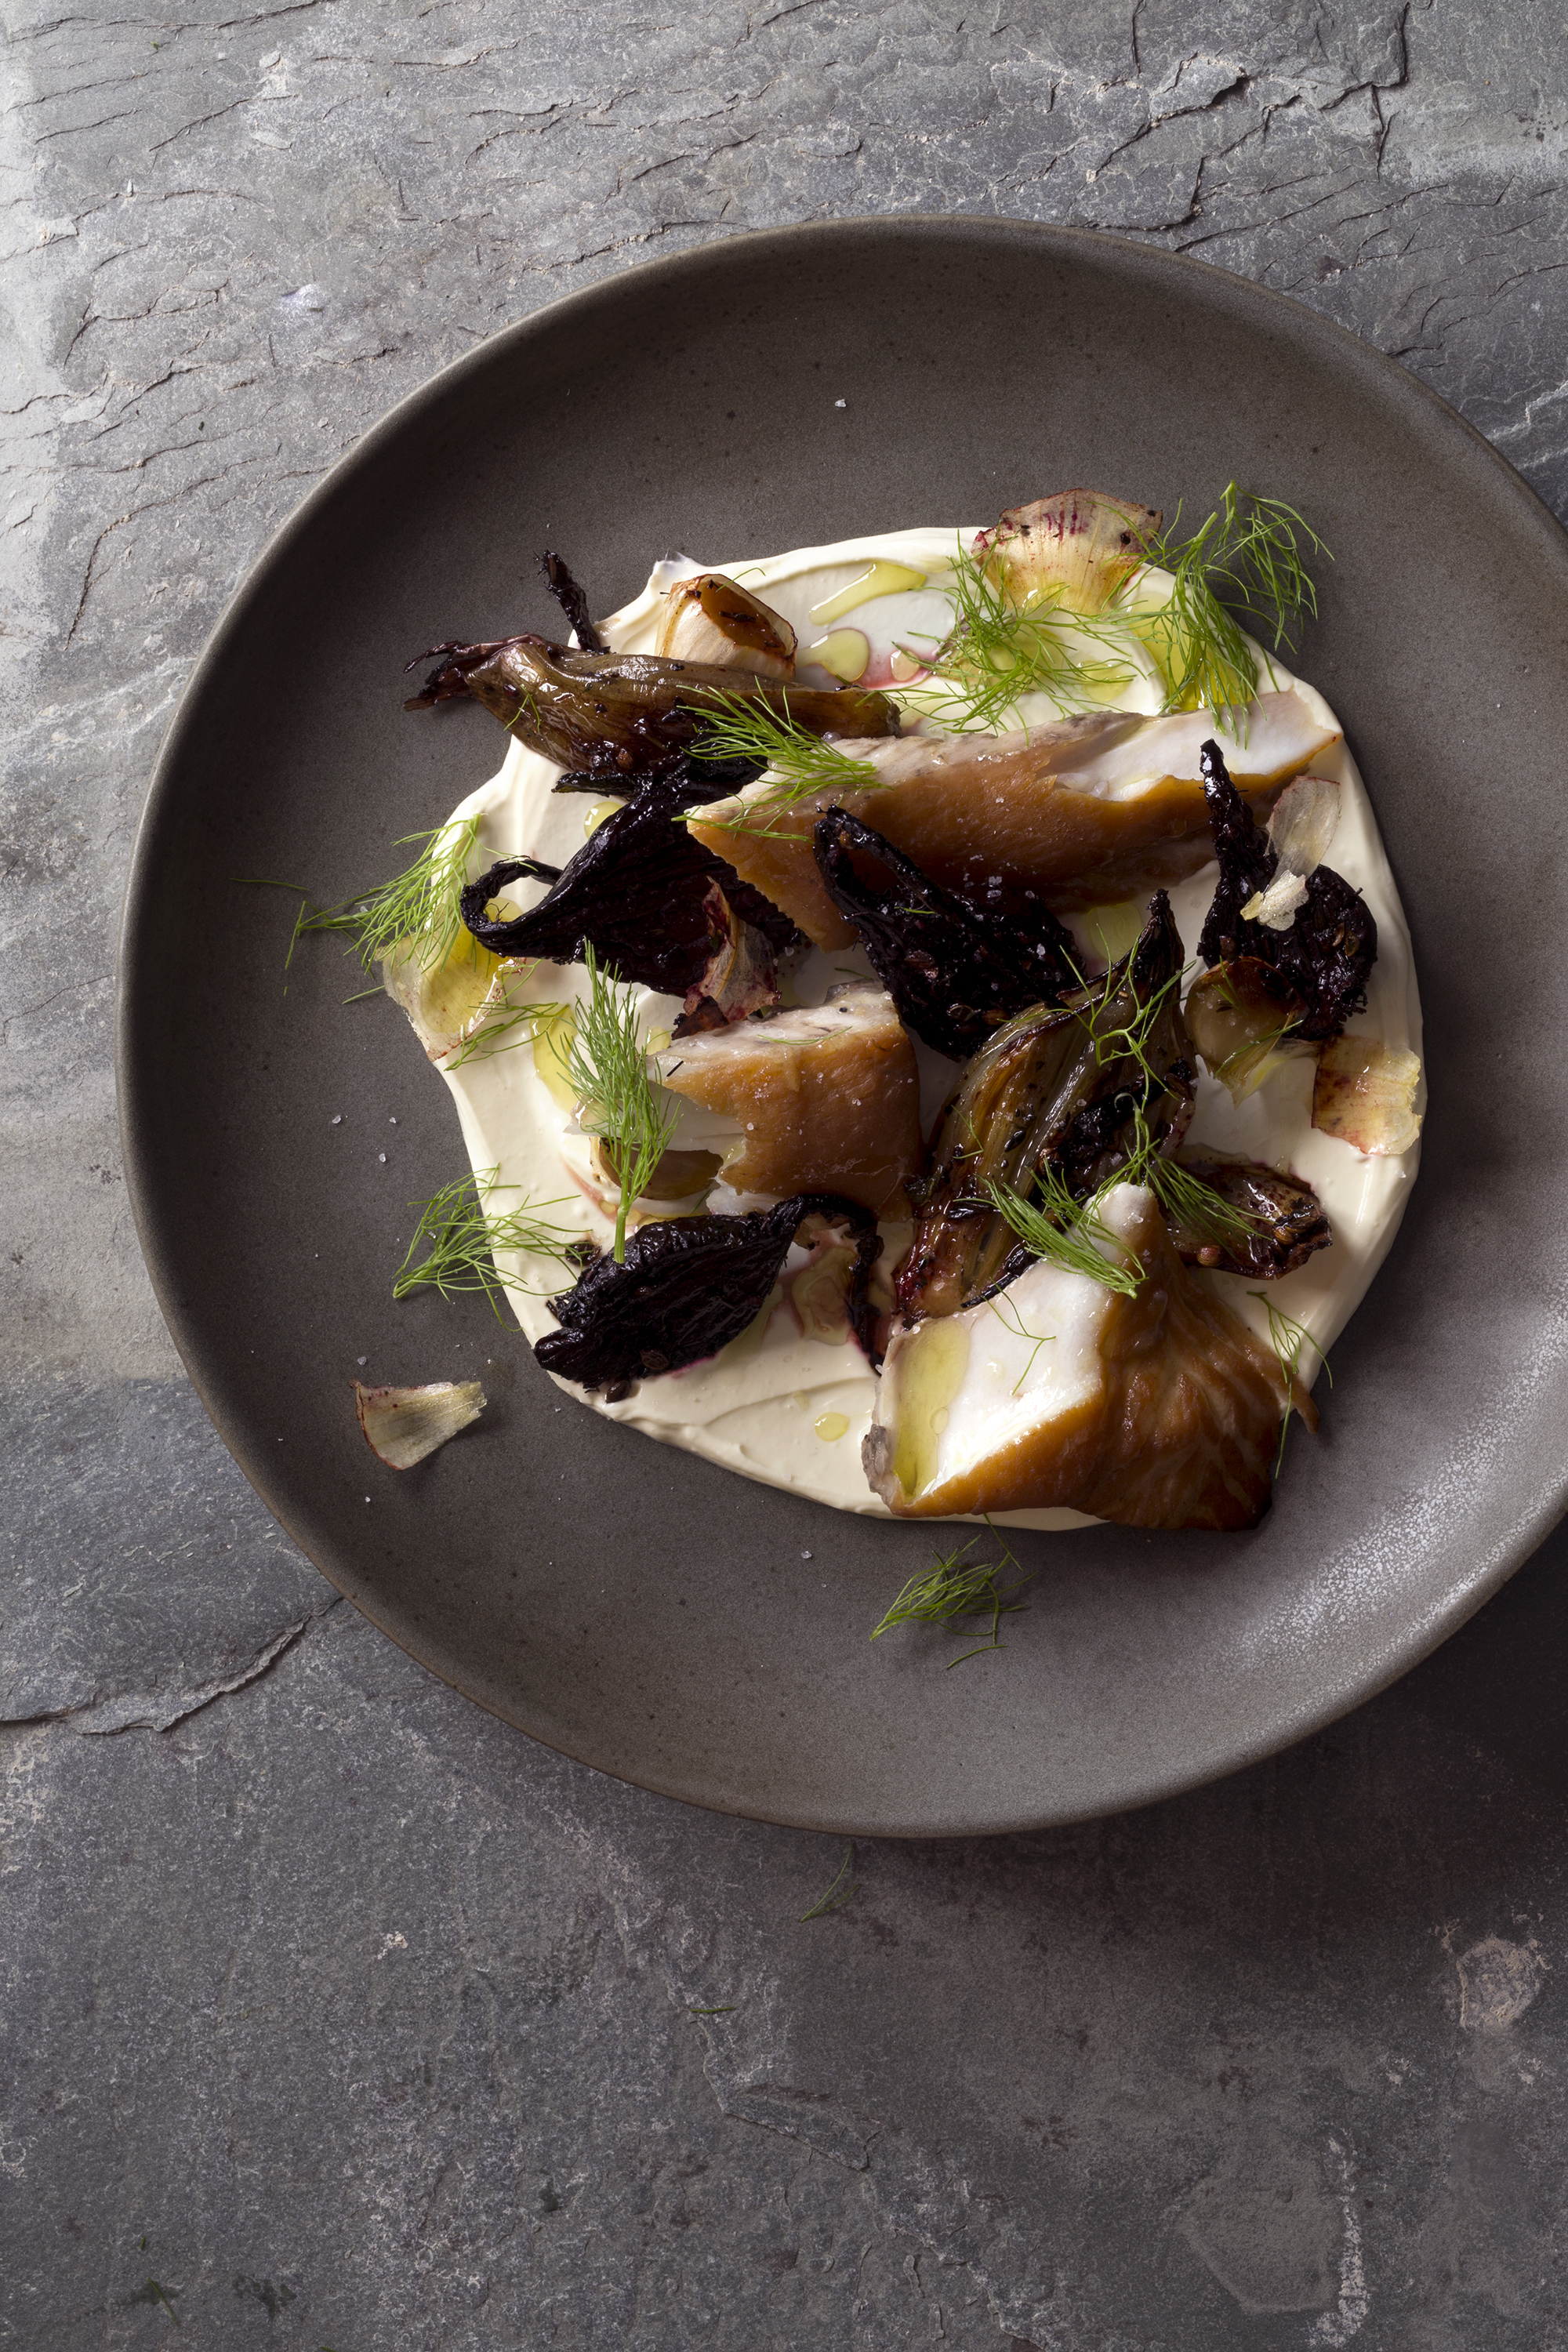 Smoked Kingfish with Creme Fraiche, Roasted Beets, Shallot and Fennel_MG_8461.jpg